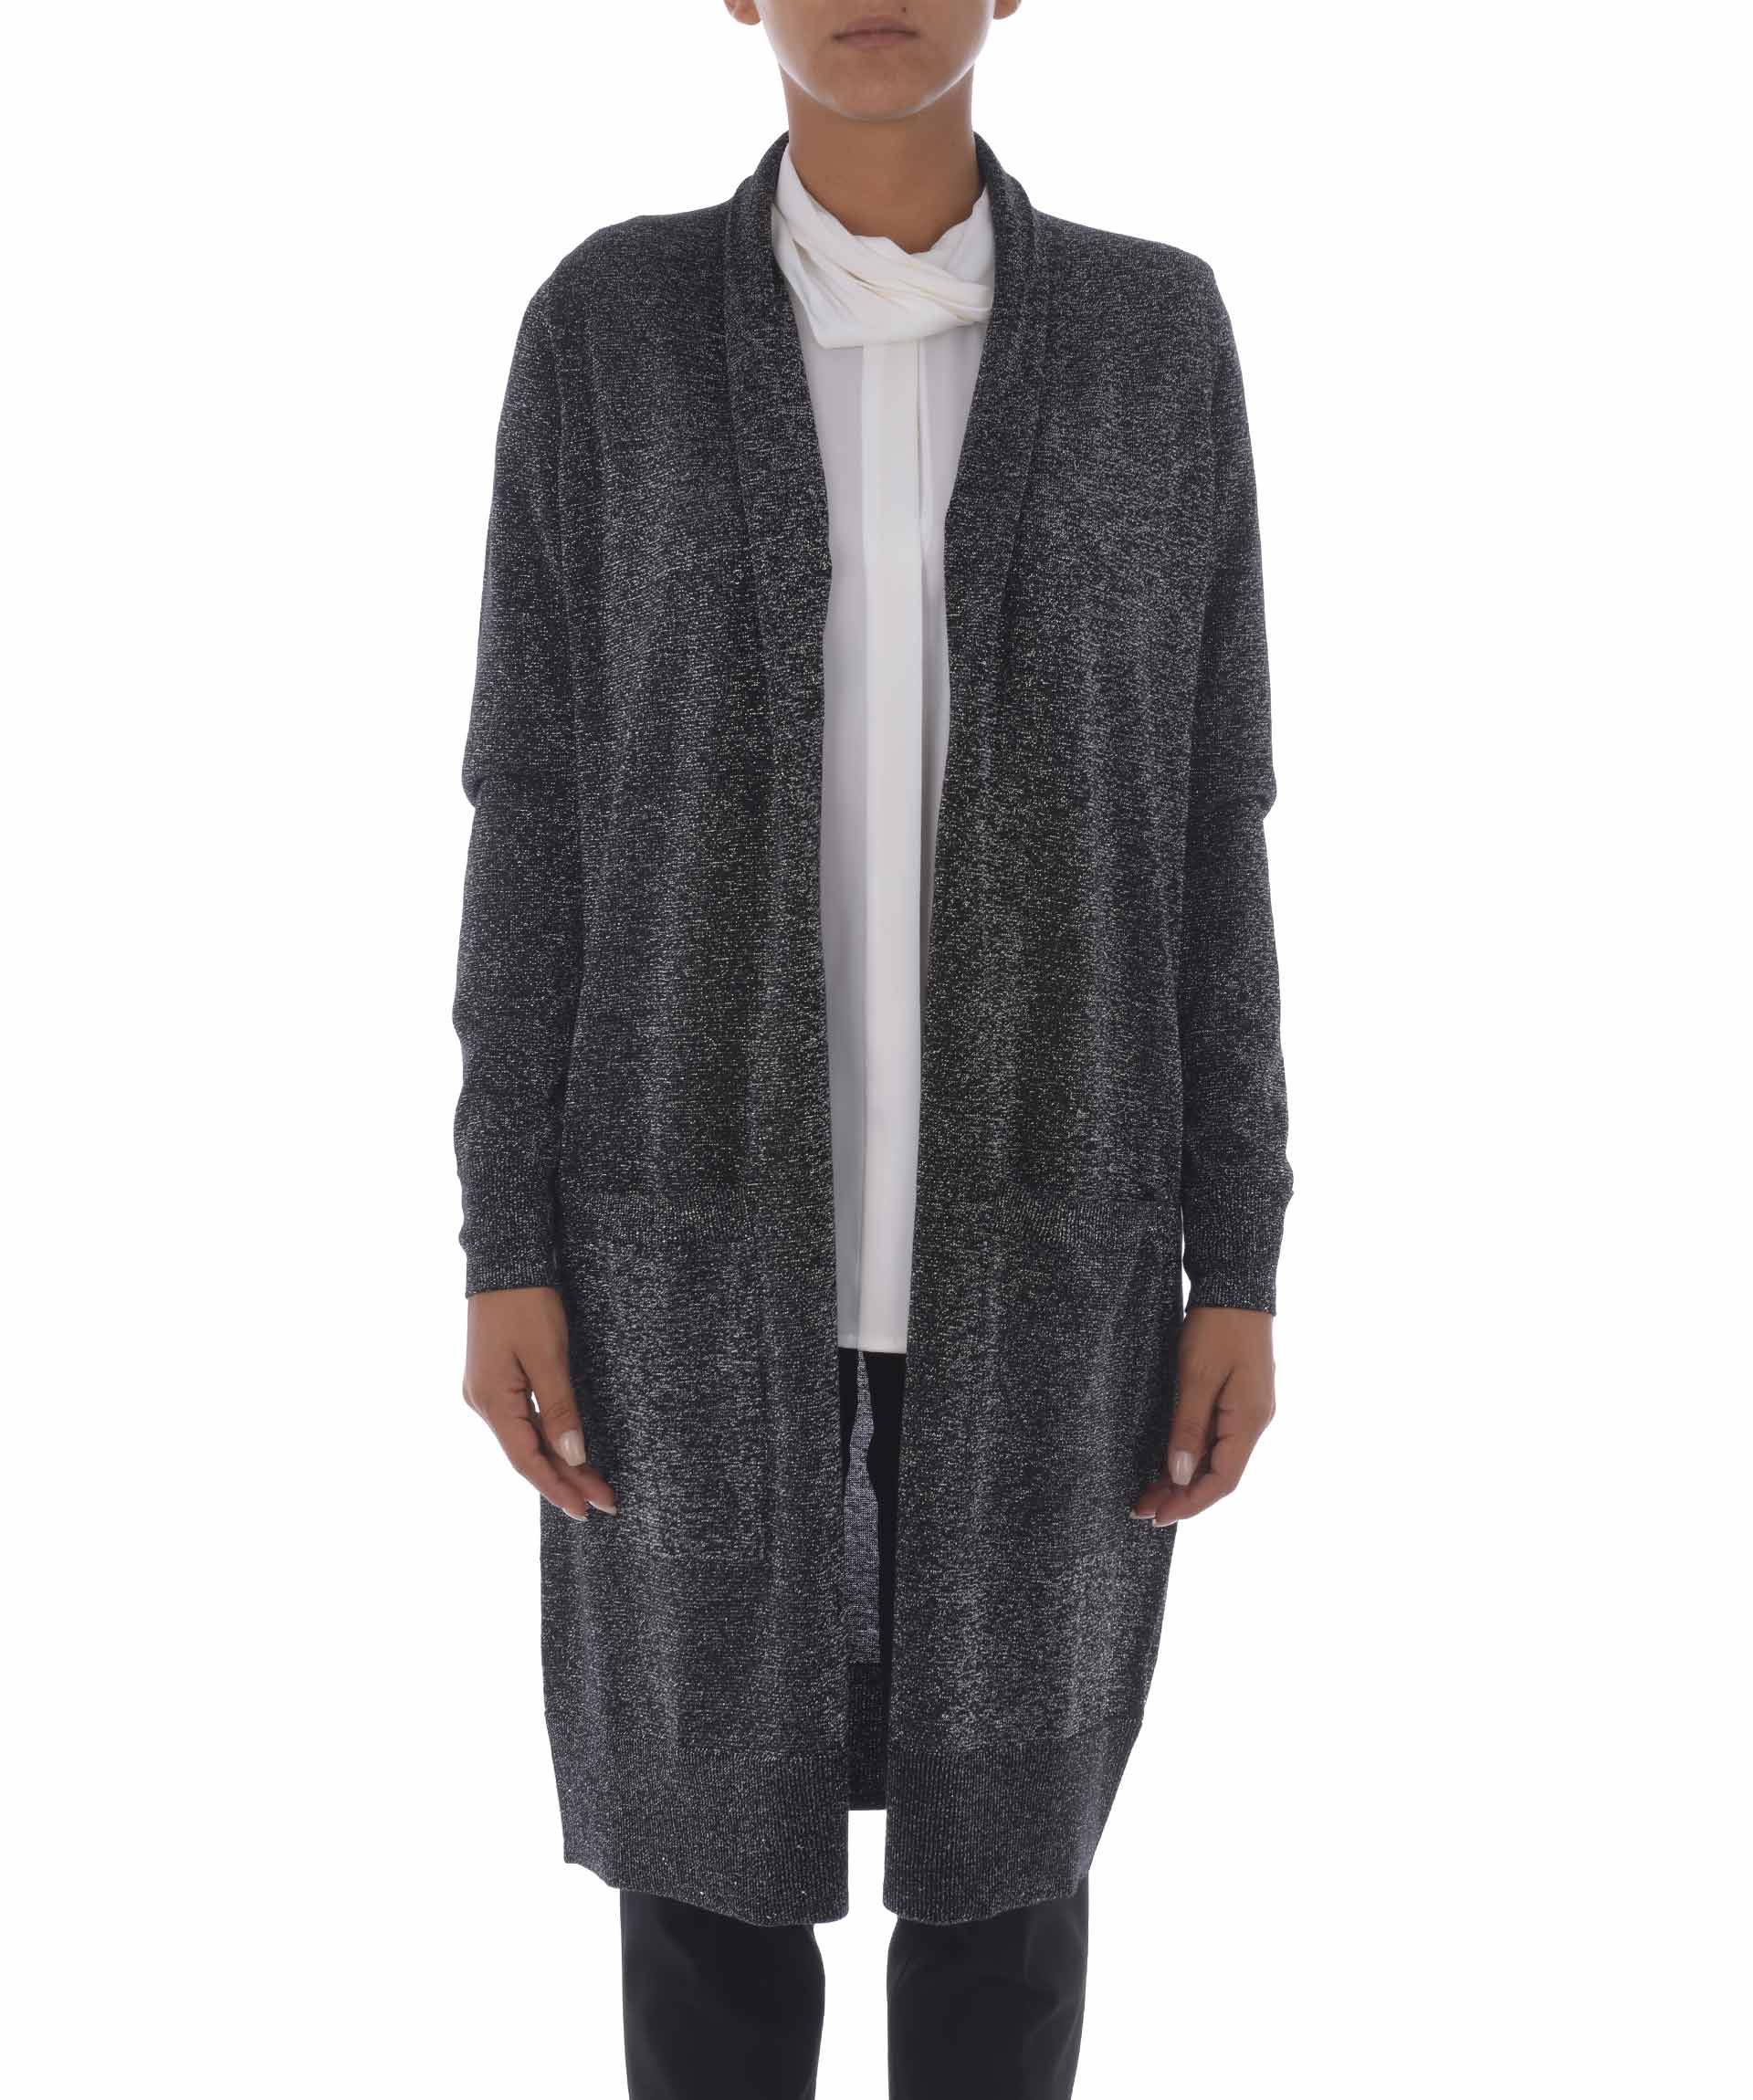 Michael Kors Long Open Cardigan